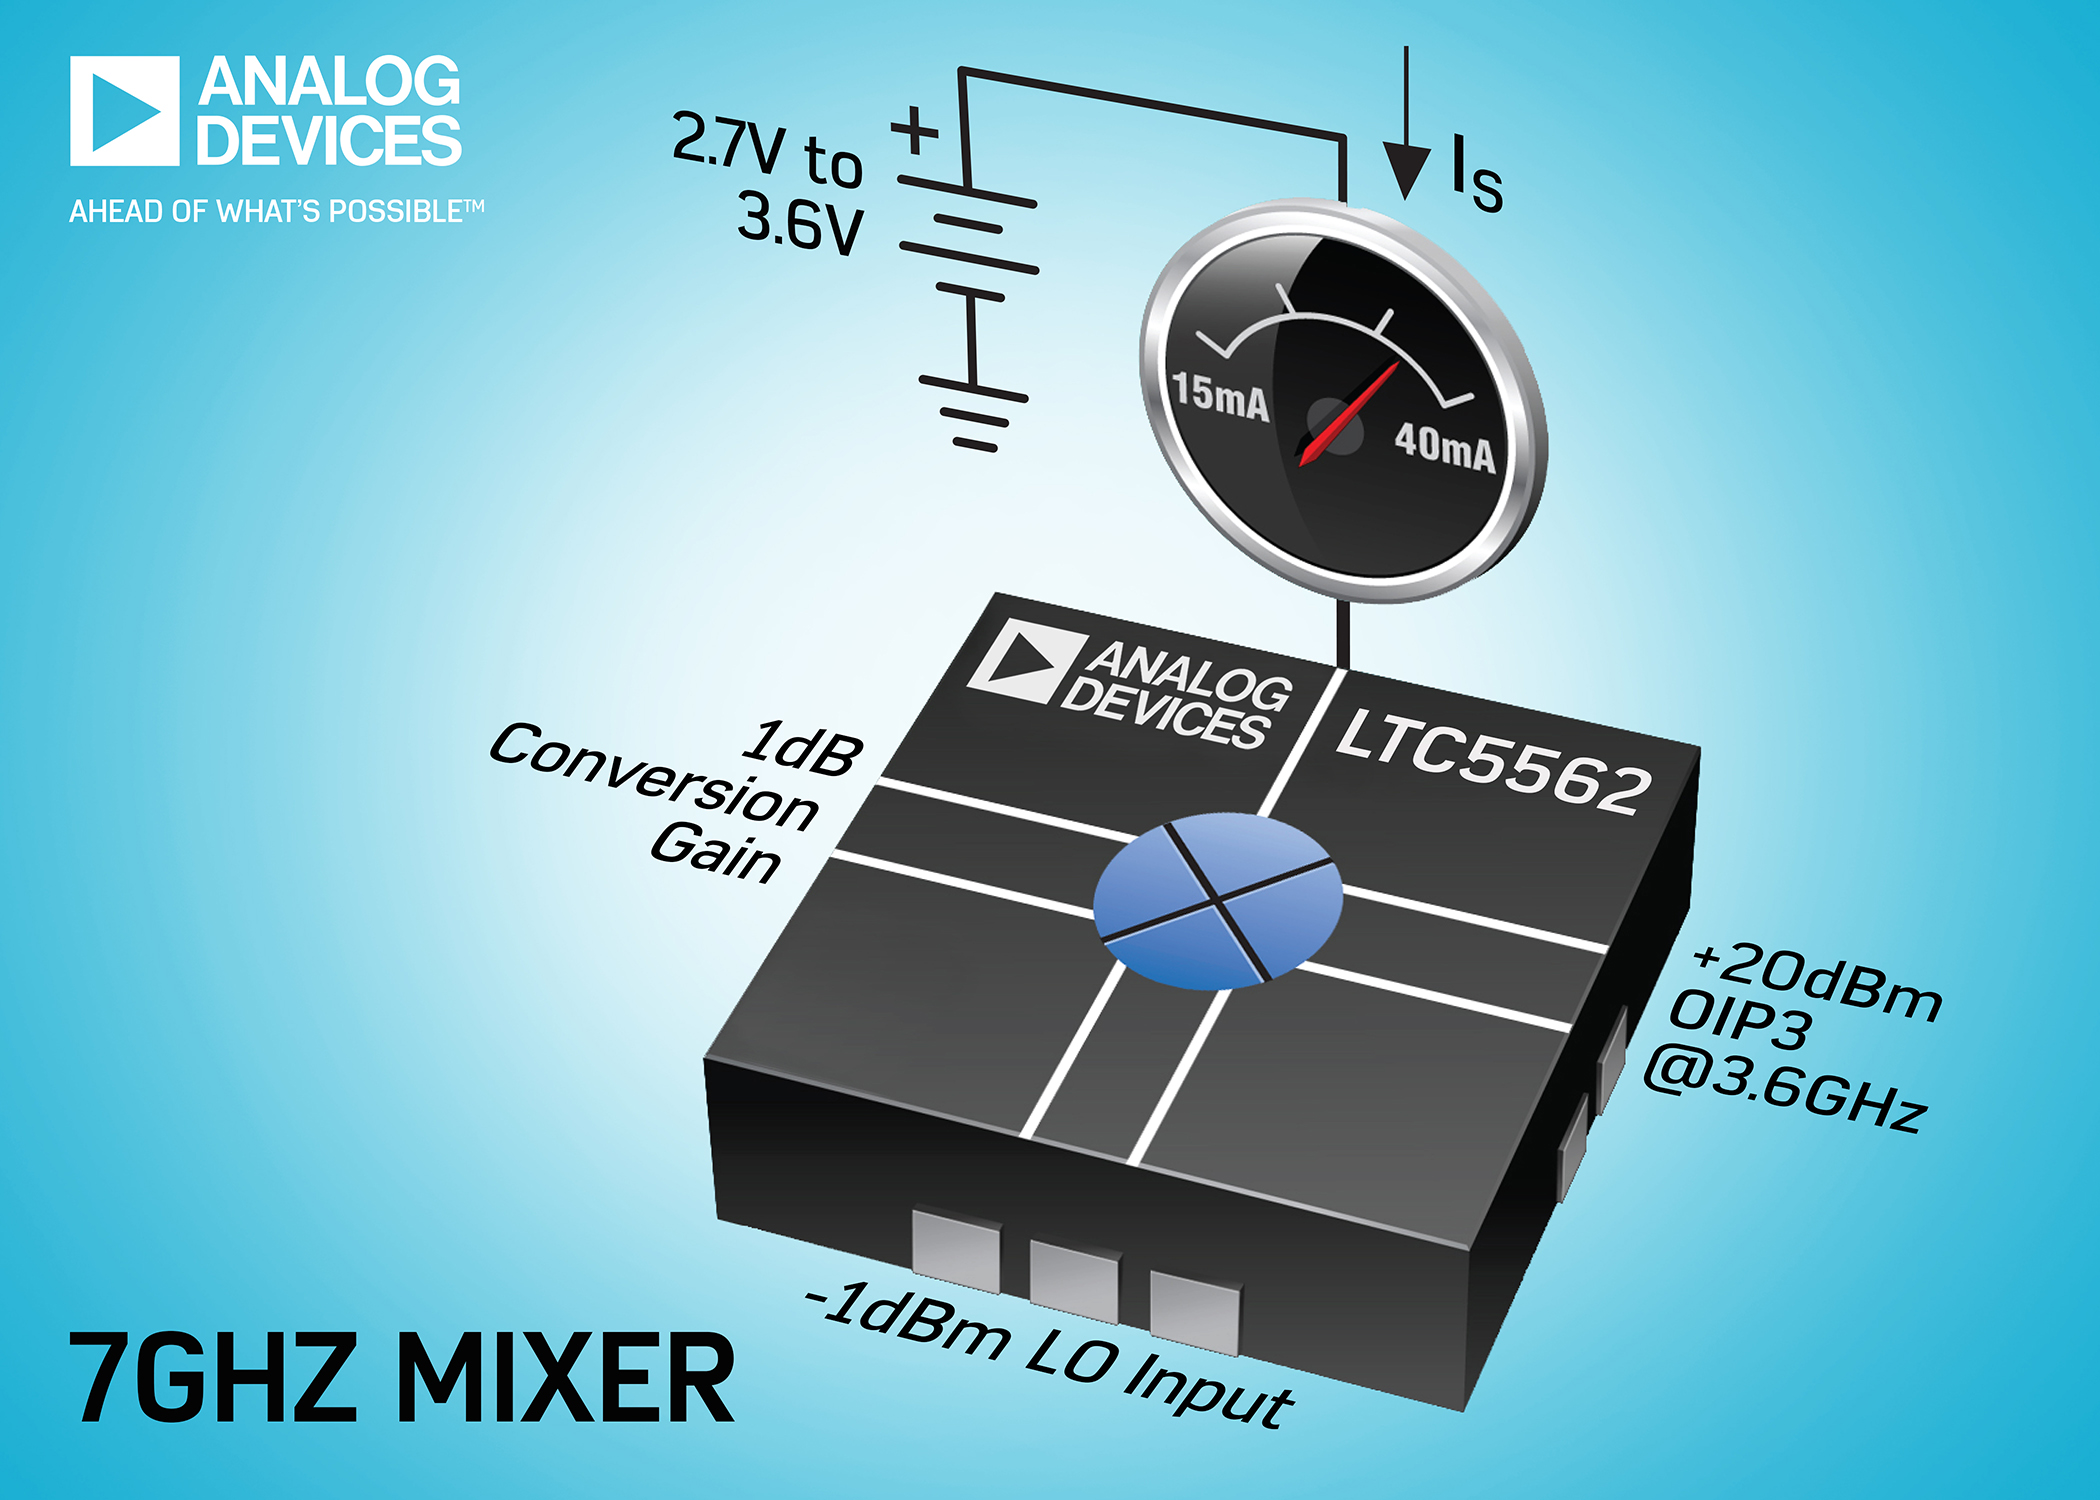 Low-Power Active Mixer Delivers 7GHz Bandwidth & 20dBm OIP3